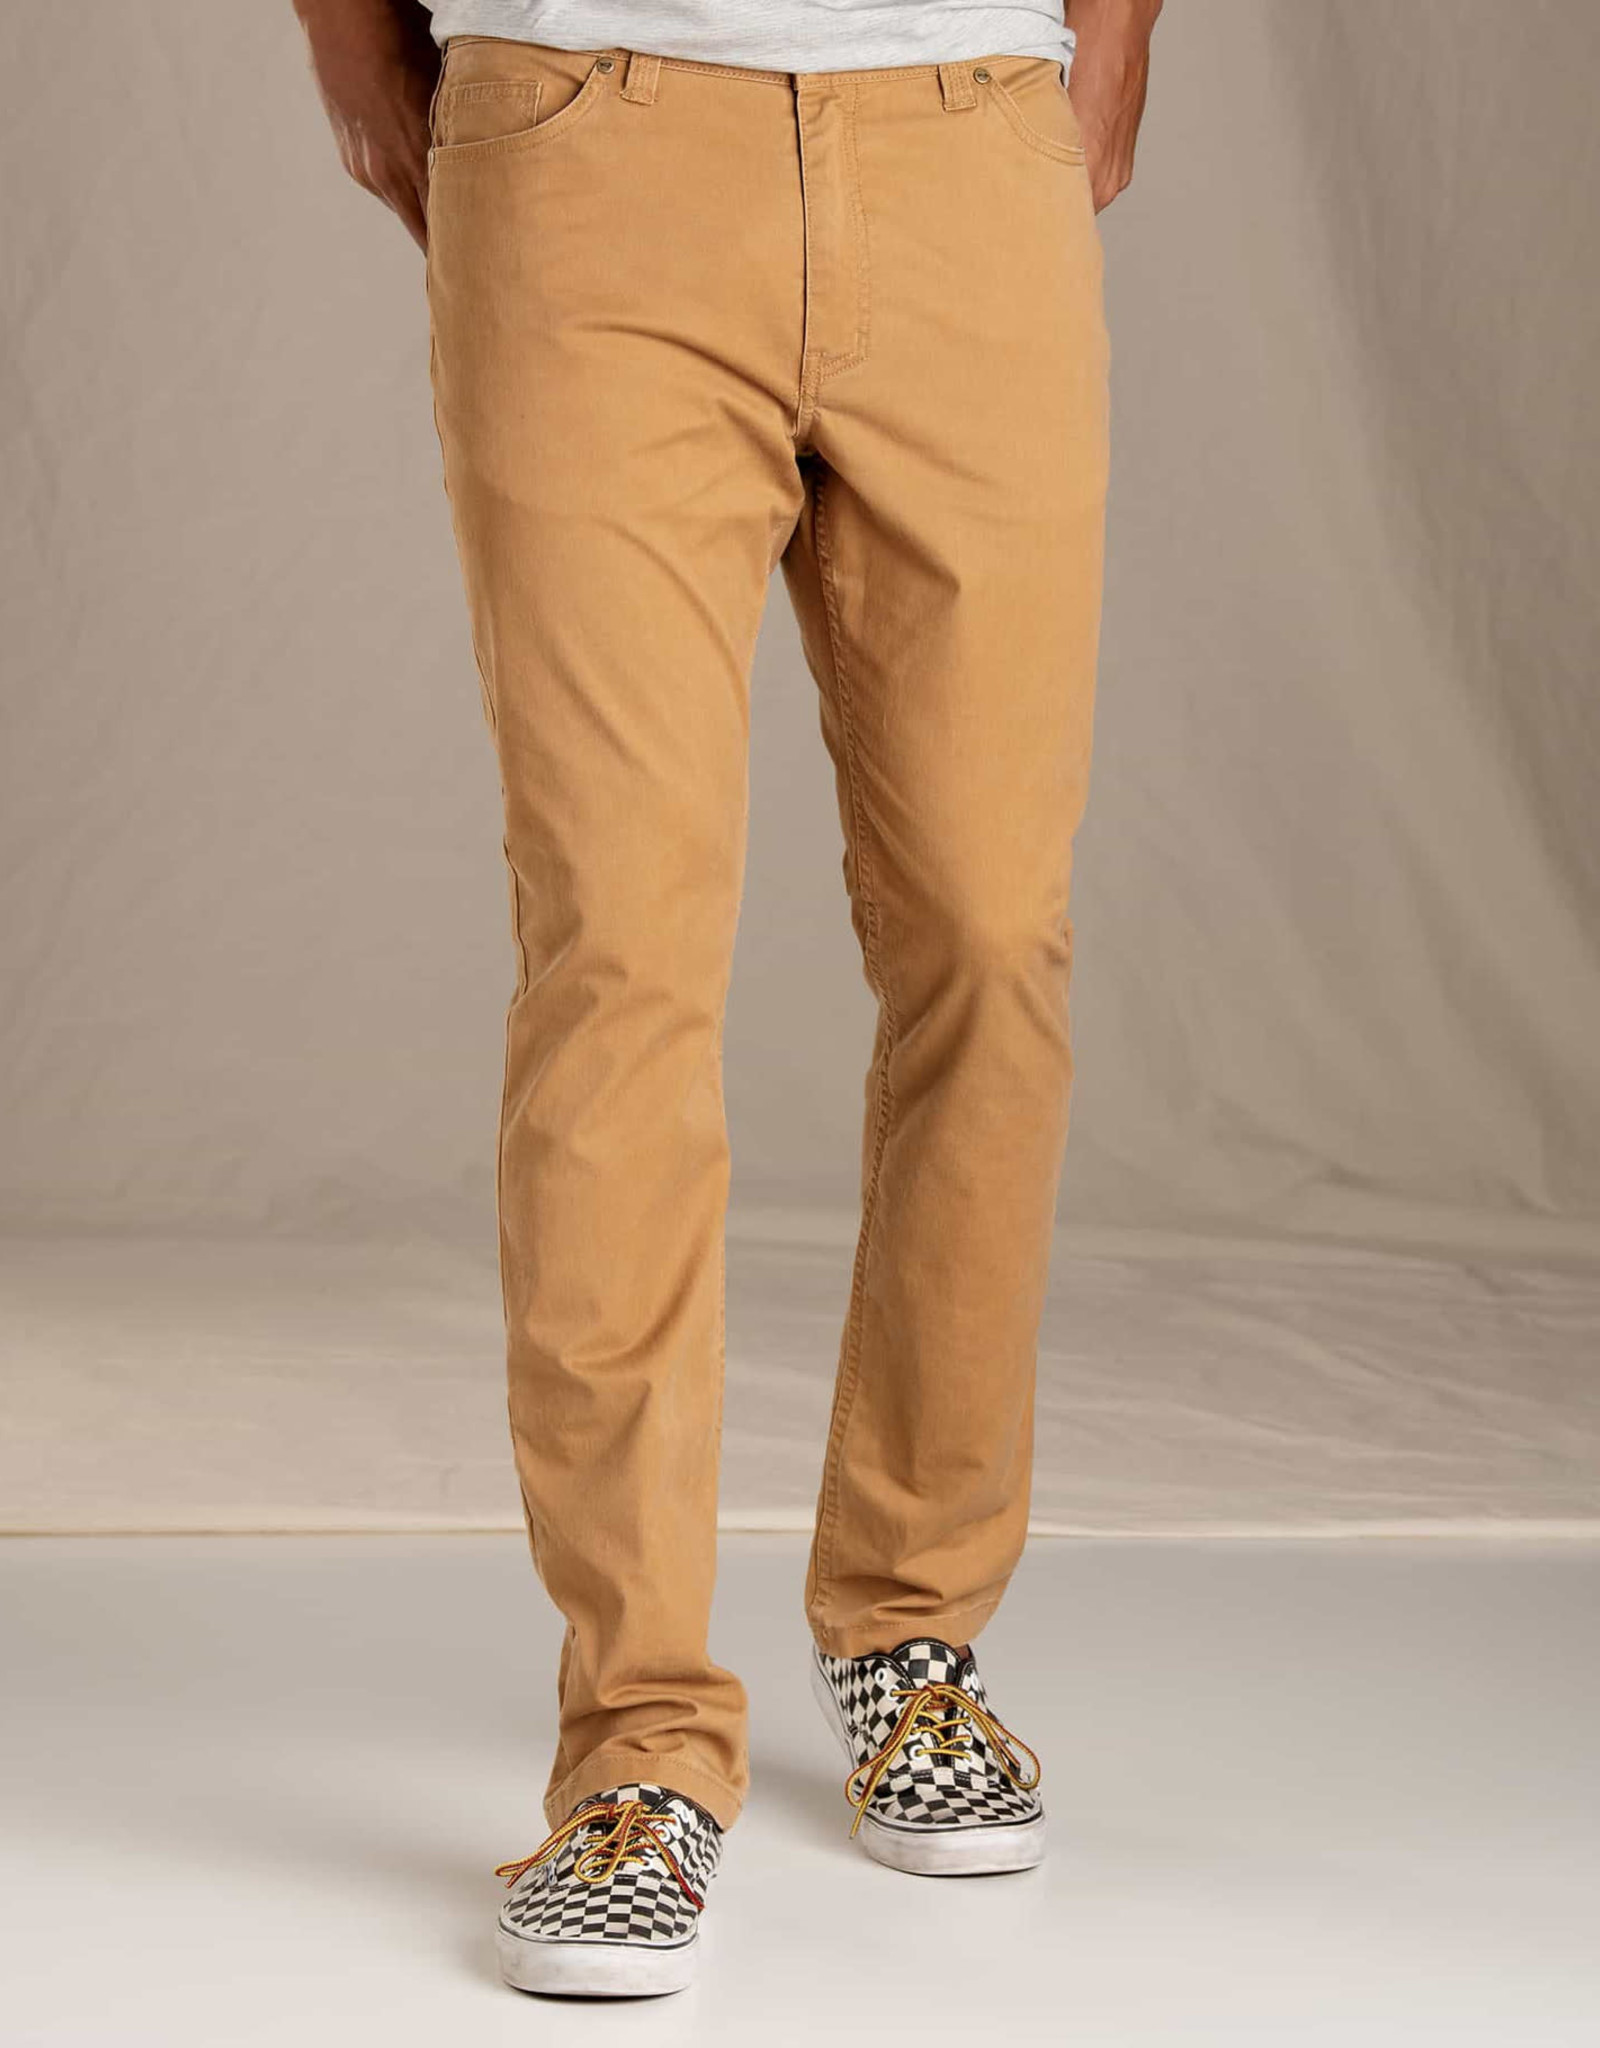 Toad & Co Mission Ridge 5 Pocket Pant